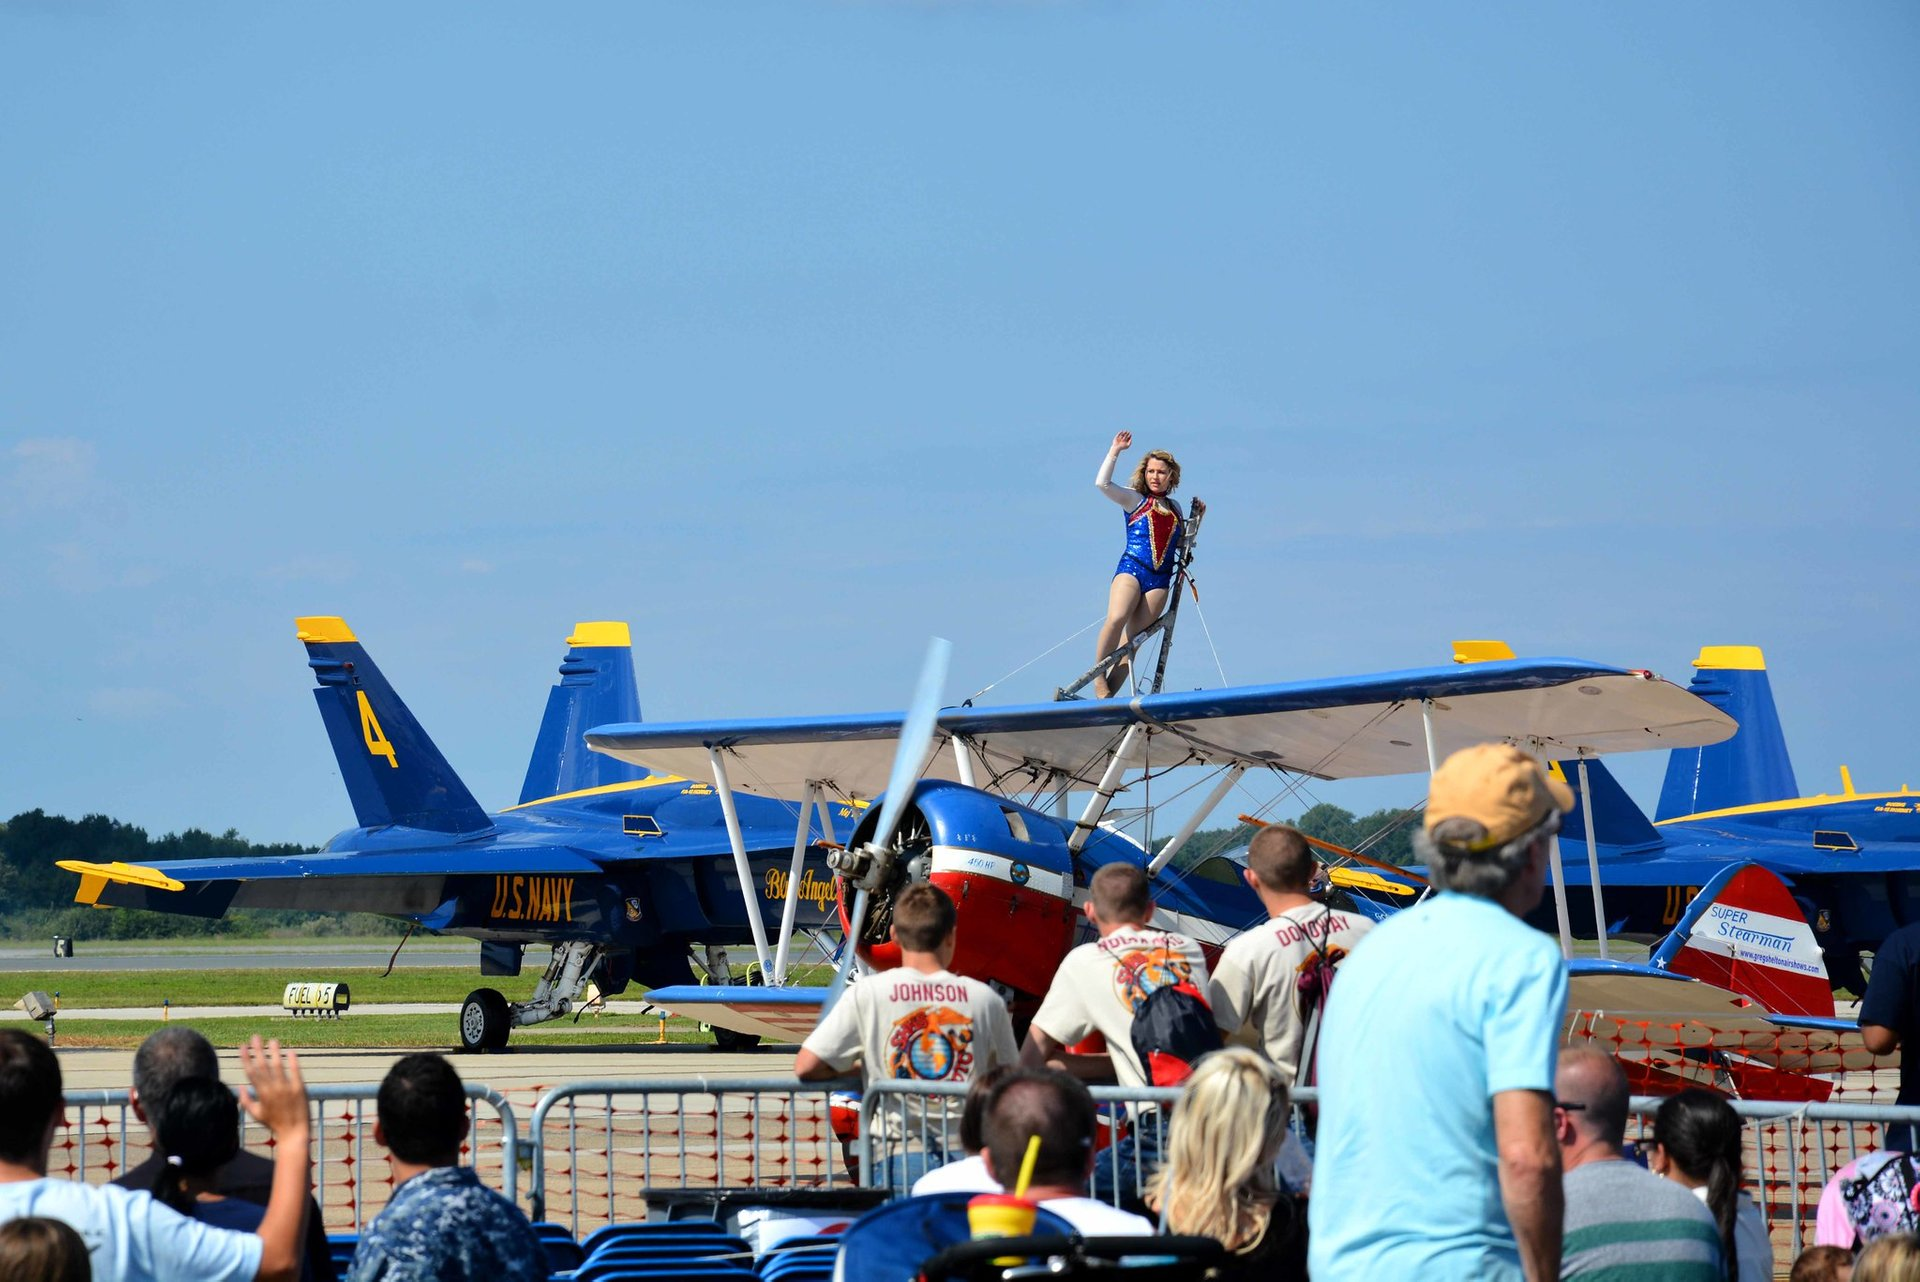 Best time for NAS Oceana Air Show in Virginia 2020